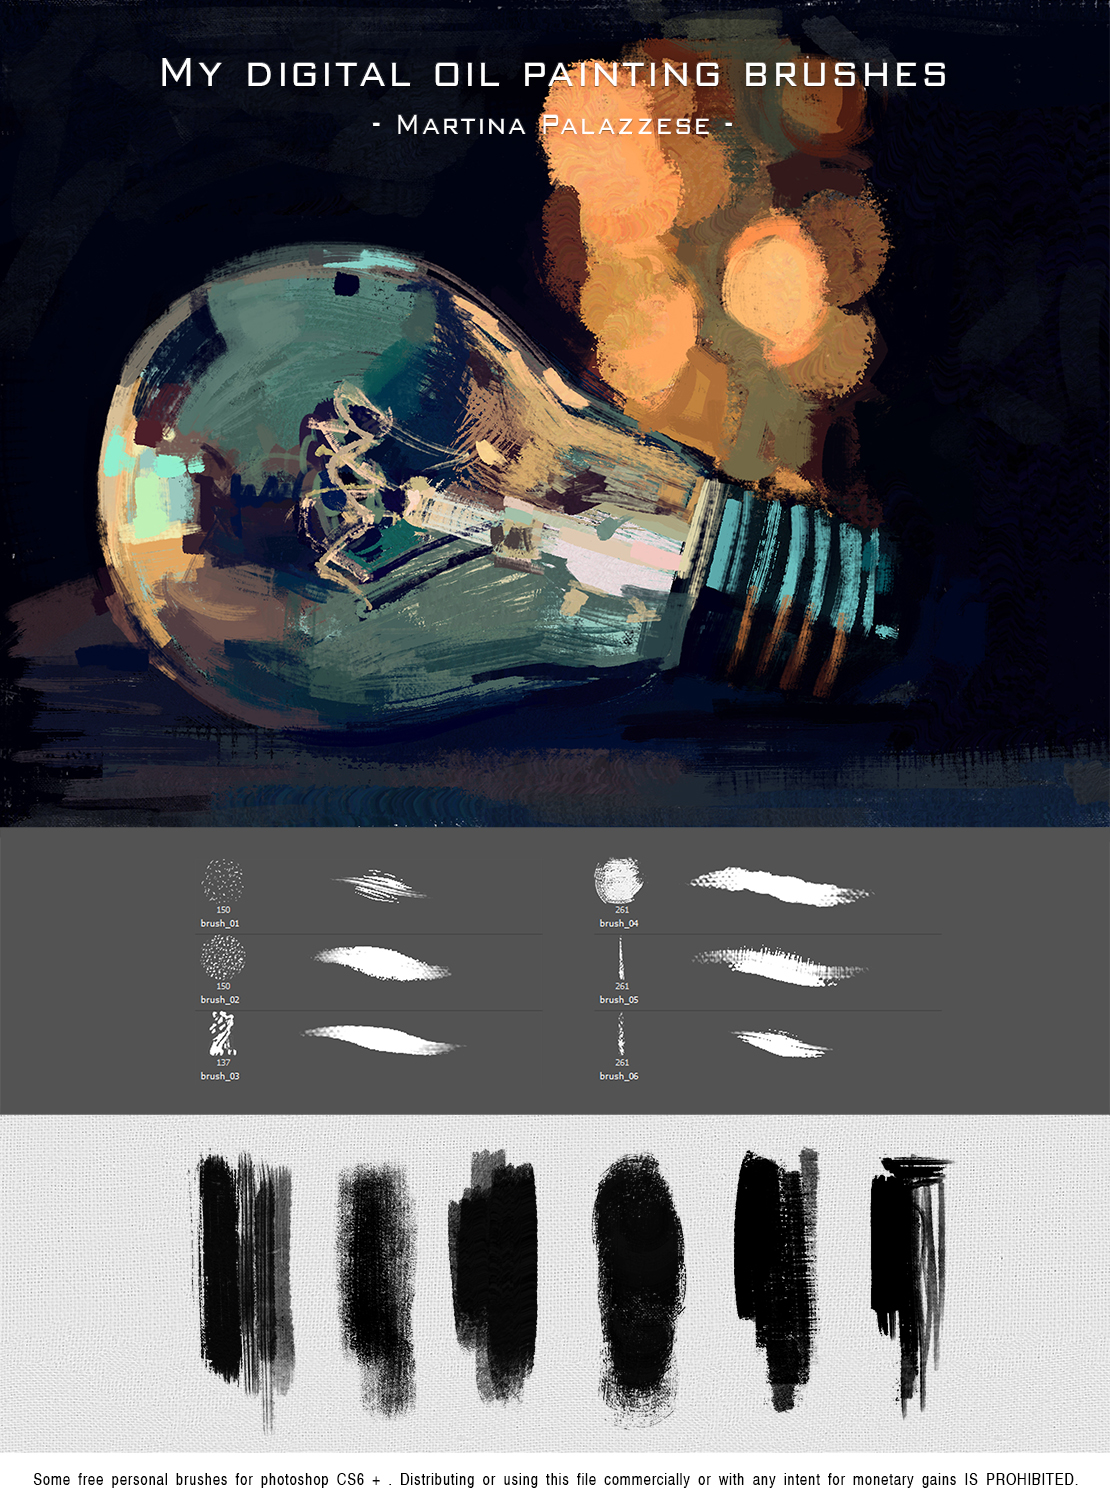 My digital oil painting brushes